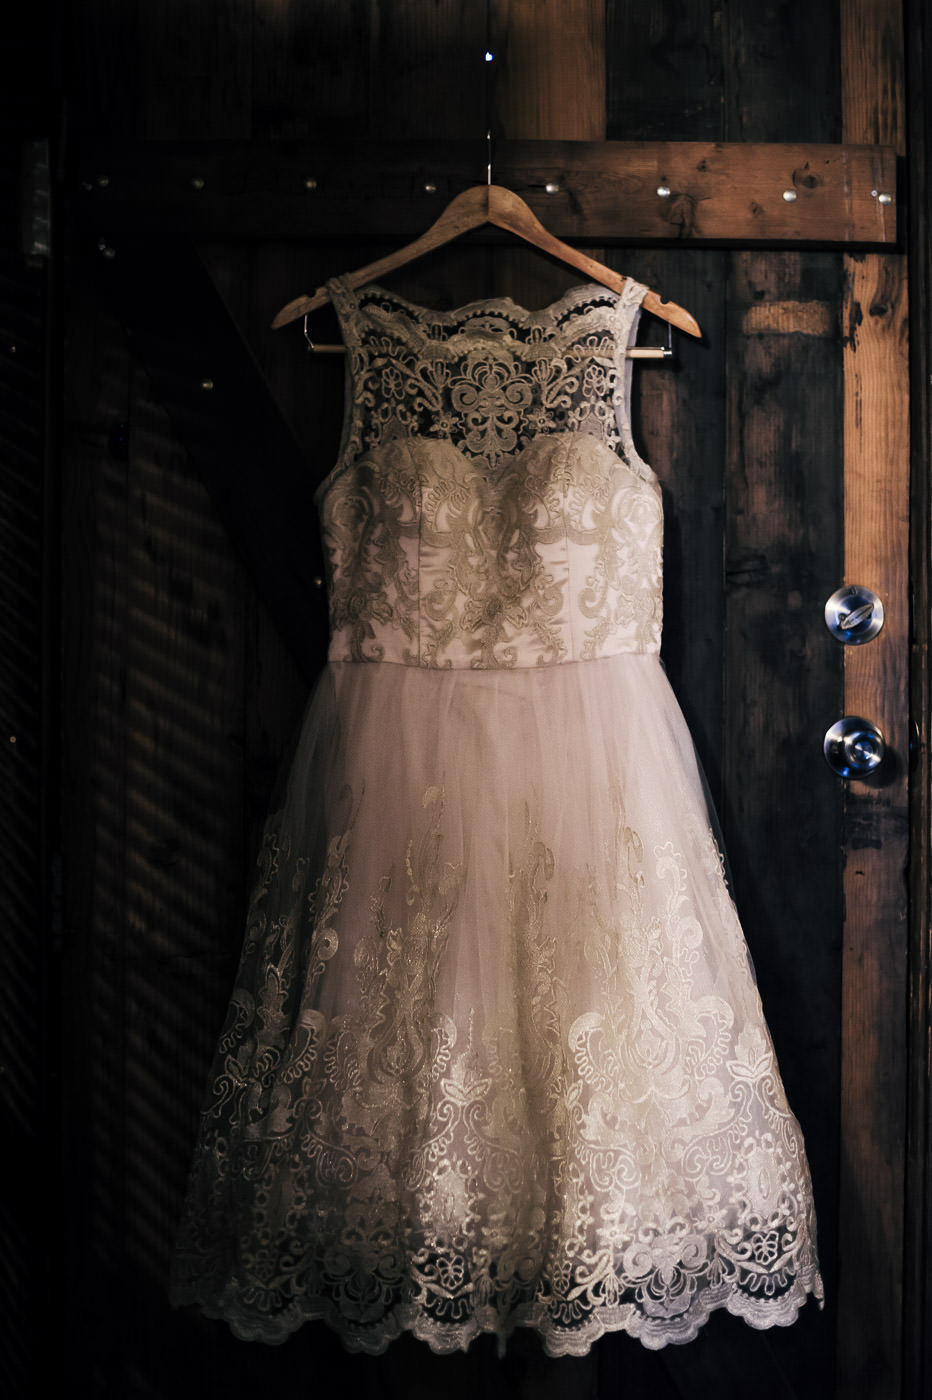 short lace wedding dress with lots of charming details hangs against an old wooden door